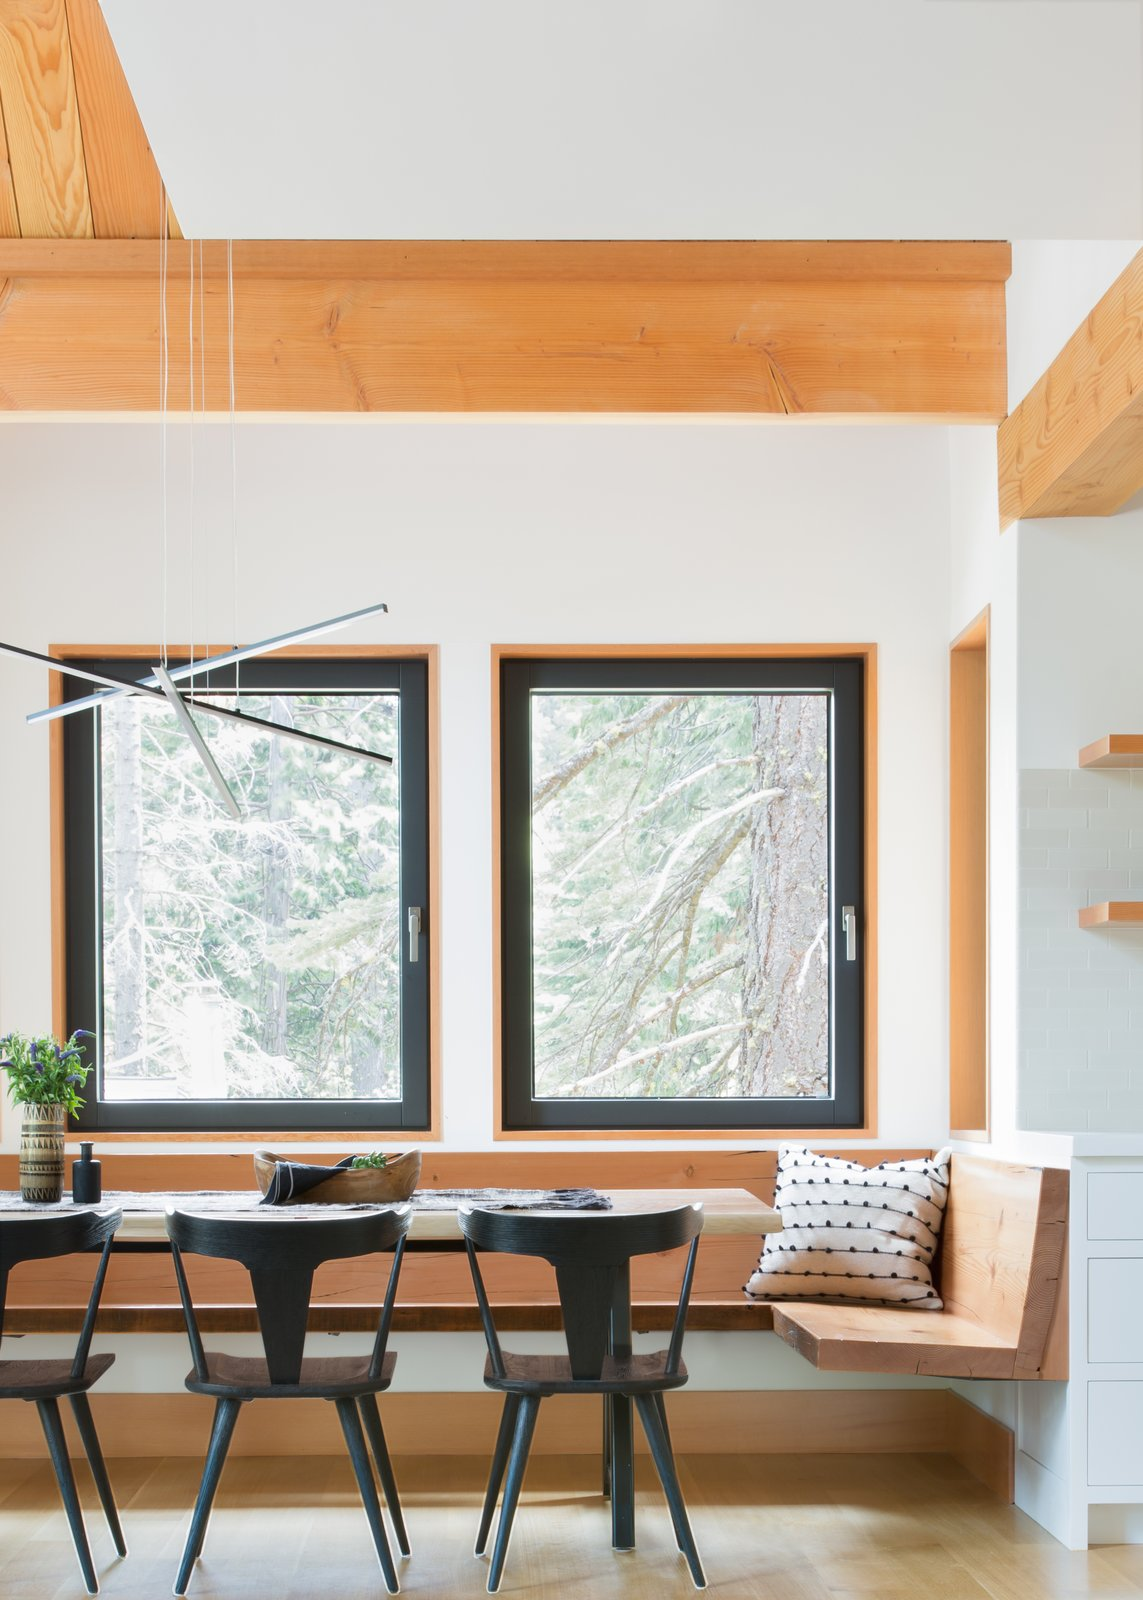 Dining, Bench, Chair, Pendant, Table, Light Hardwood, and Ceiling  Best Dining Light Hardwood Chair Bench Table Pendant Ceiling Photos from Woodsy Tahoe Cabin